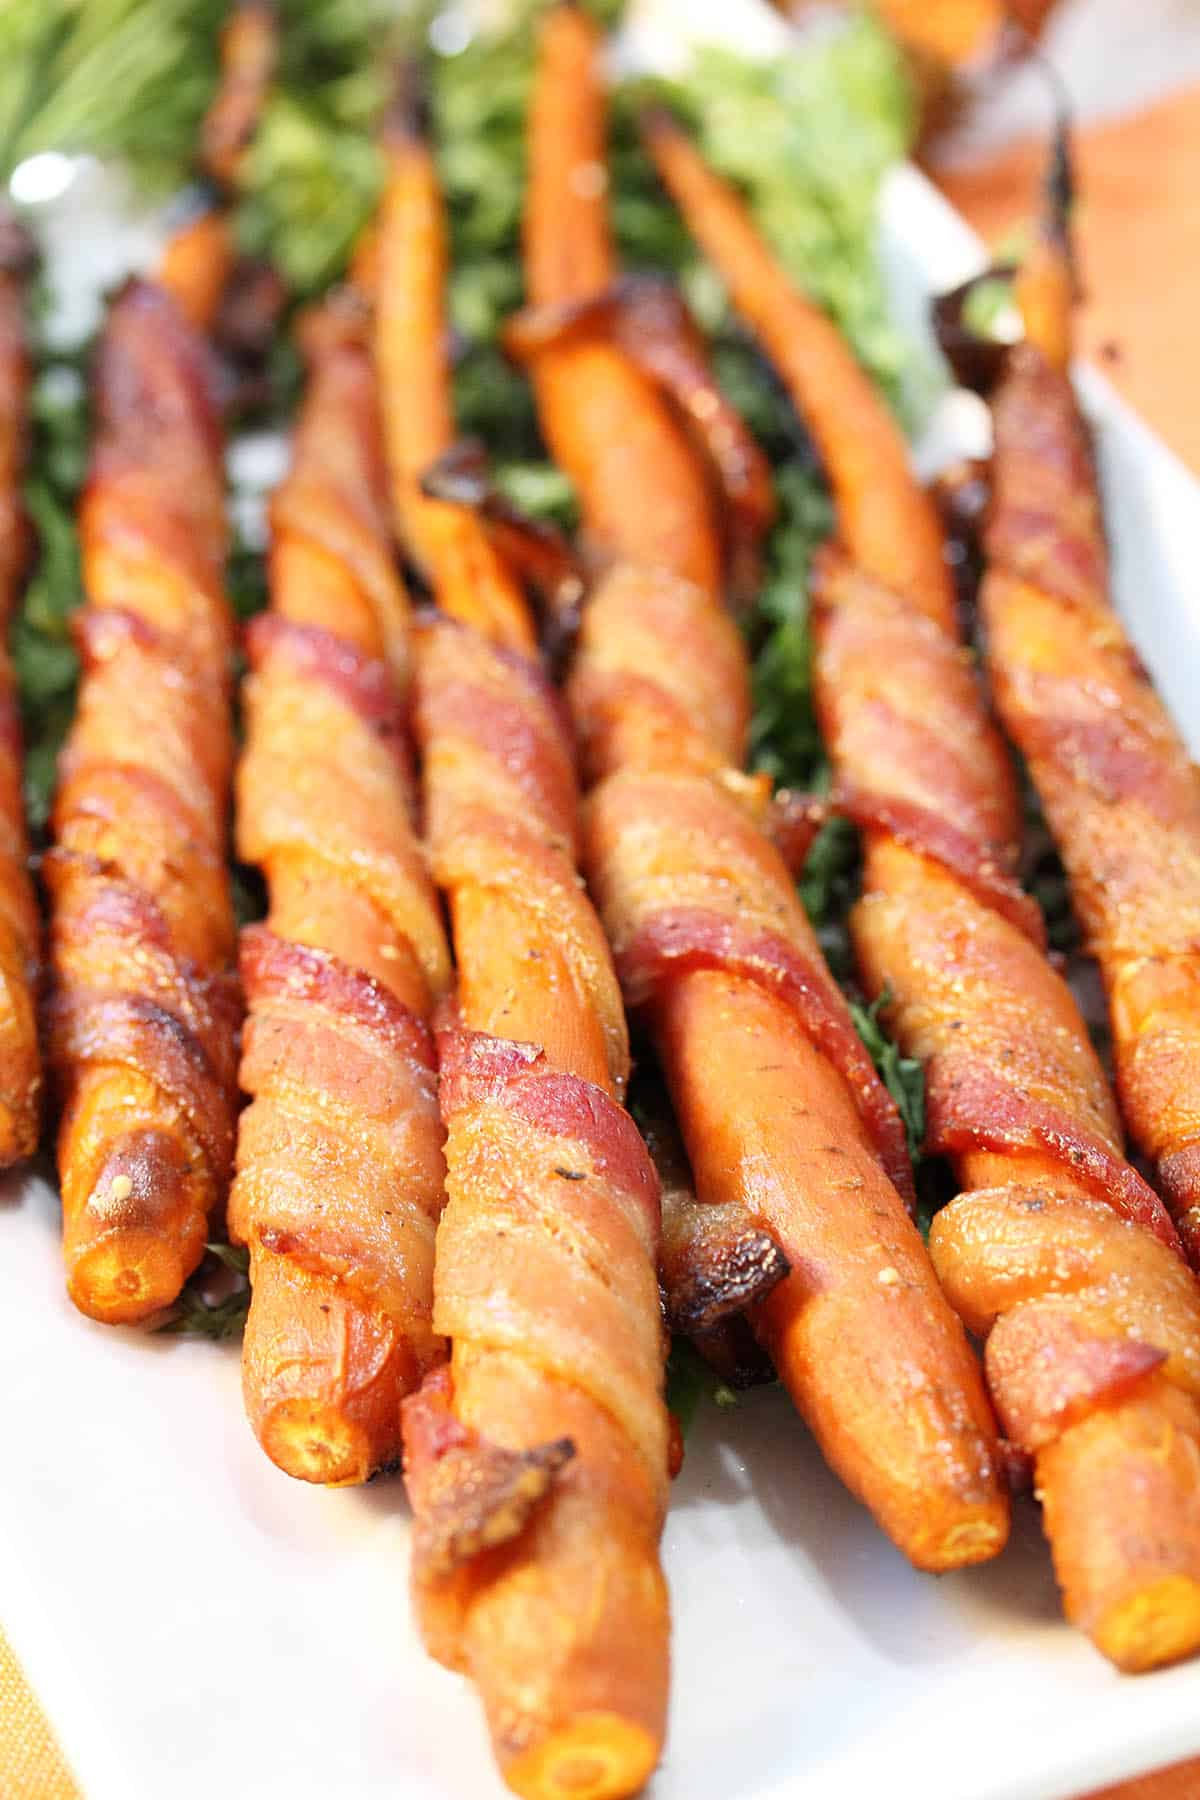 Closeup of cooked maple glazed carrots showing crispy bacon.